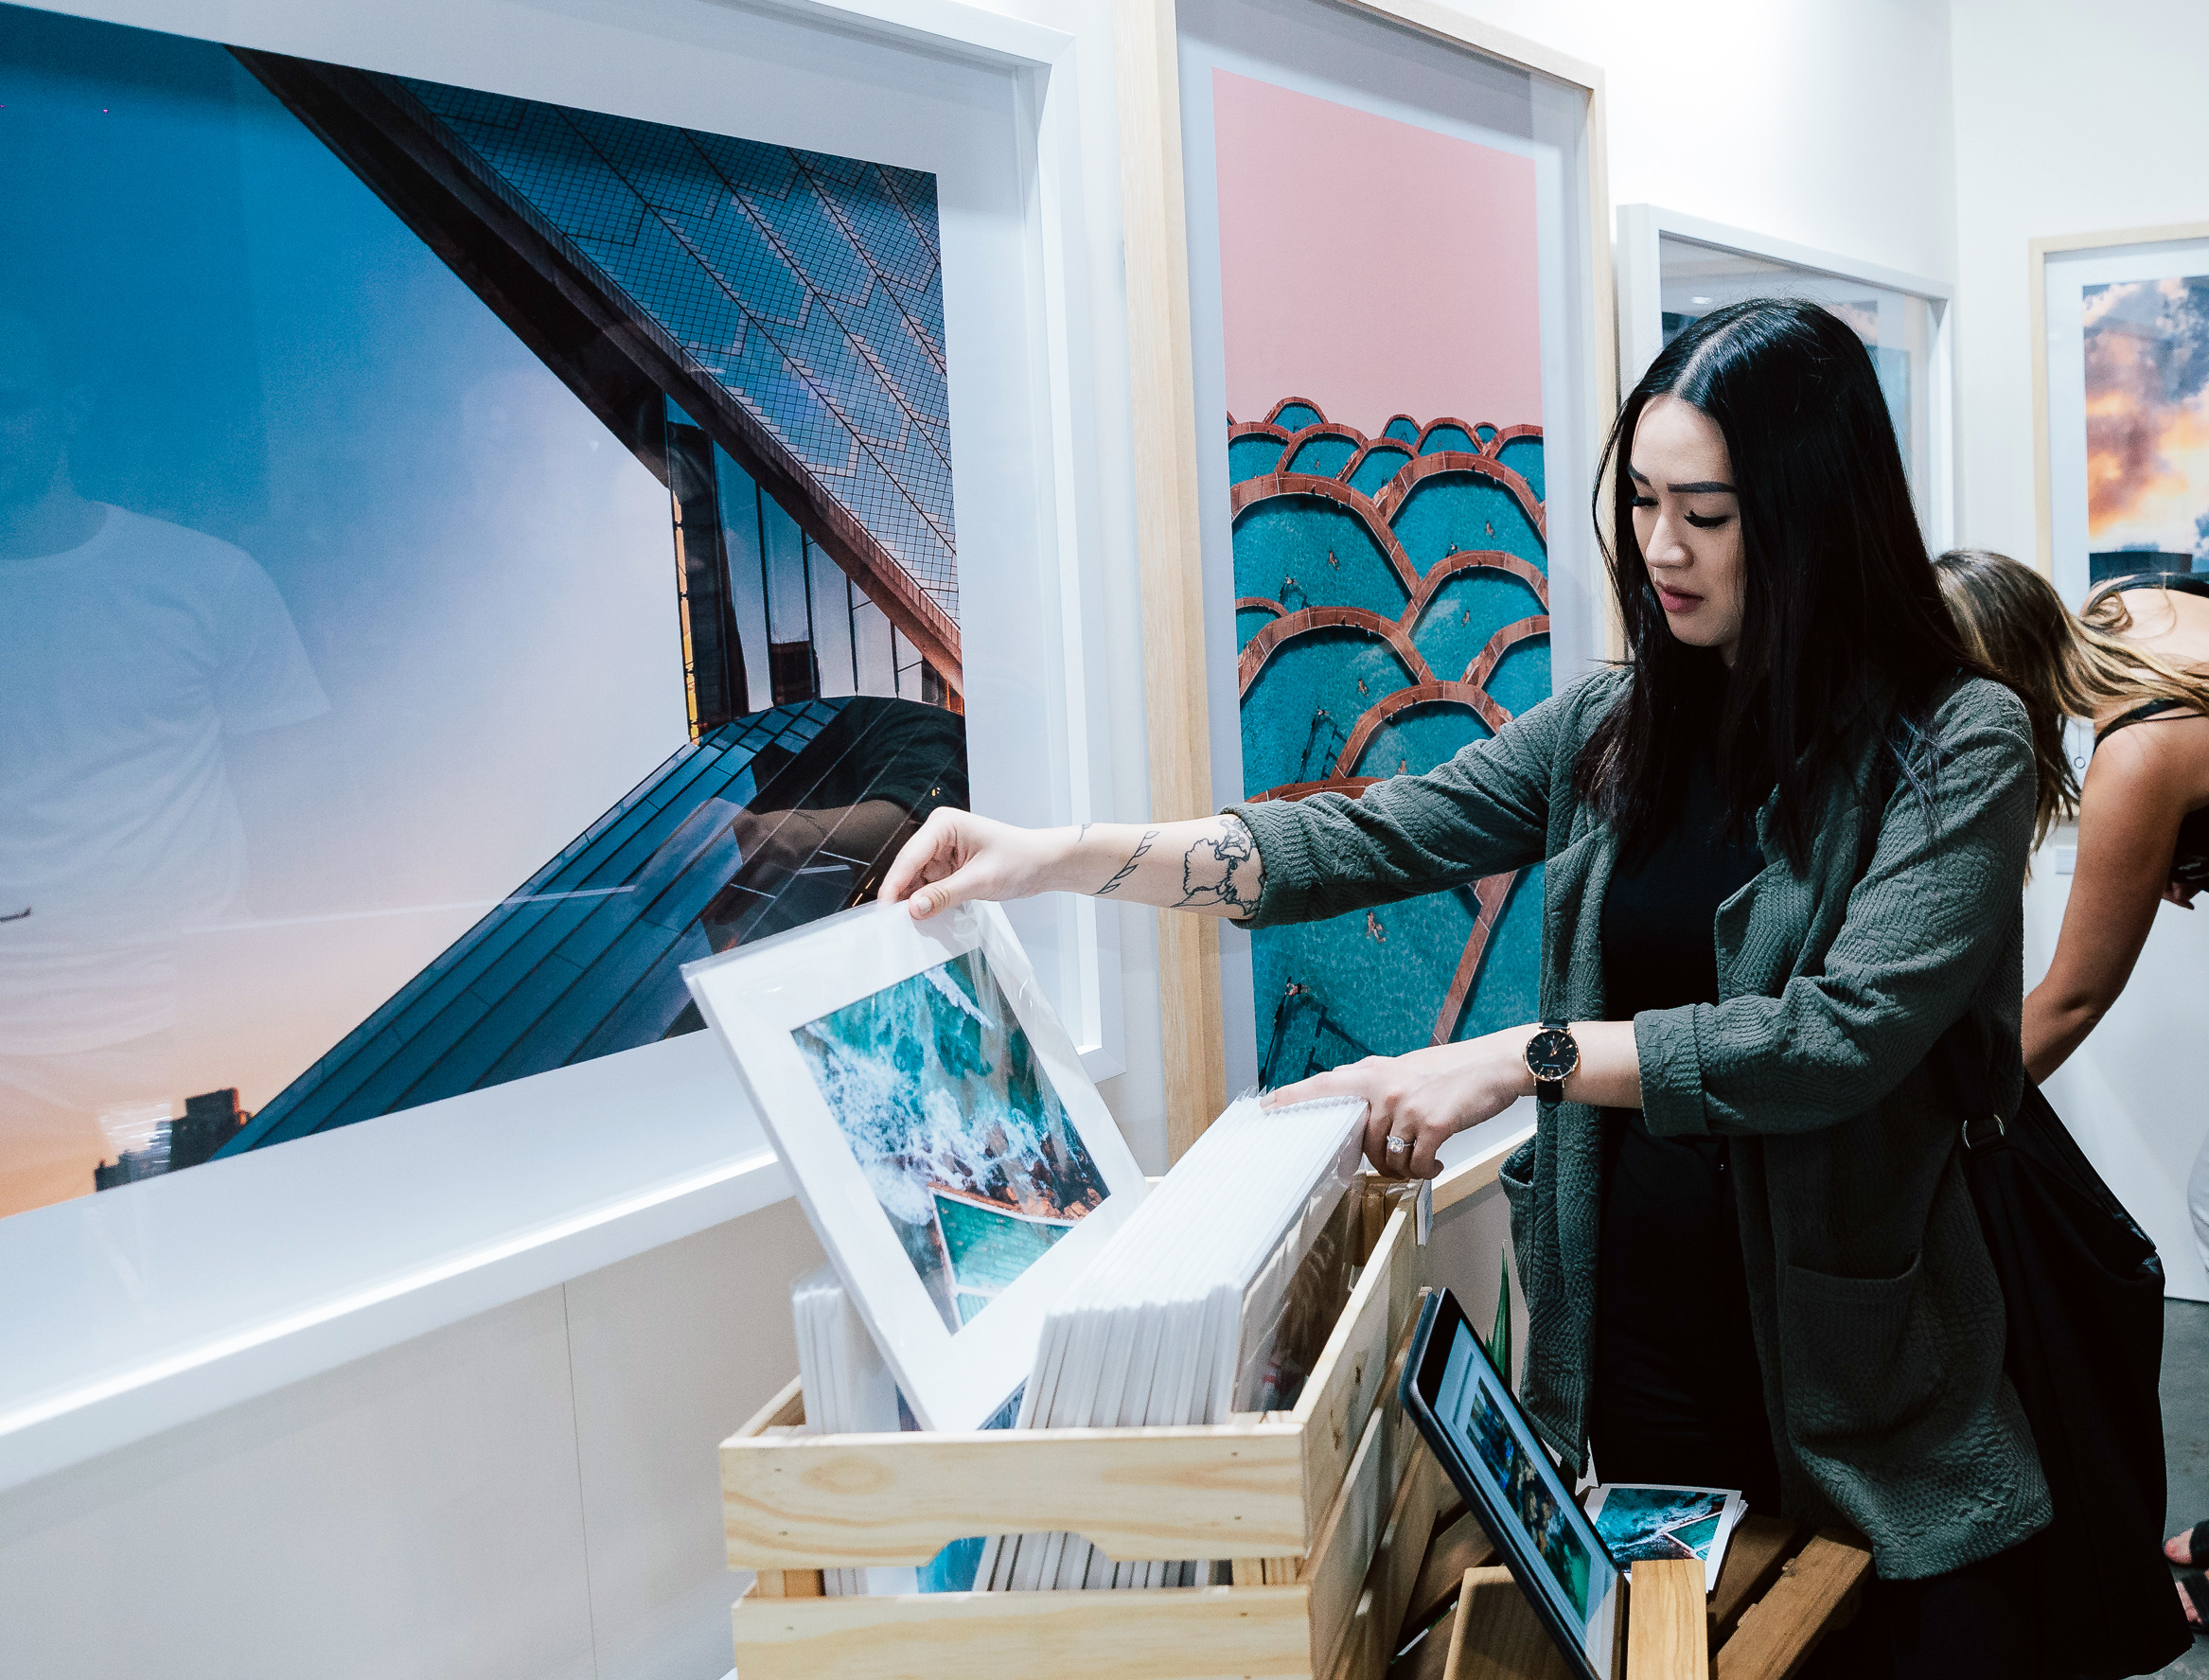 A person lifts a photo print from a crate full of prints. There are large framed artworks surrounding them. They are wearing a cool black outfit.